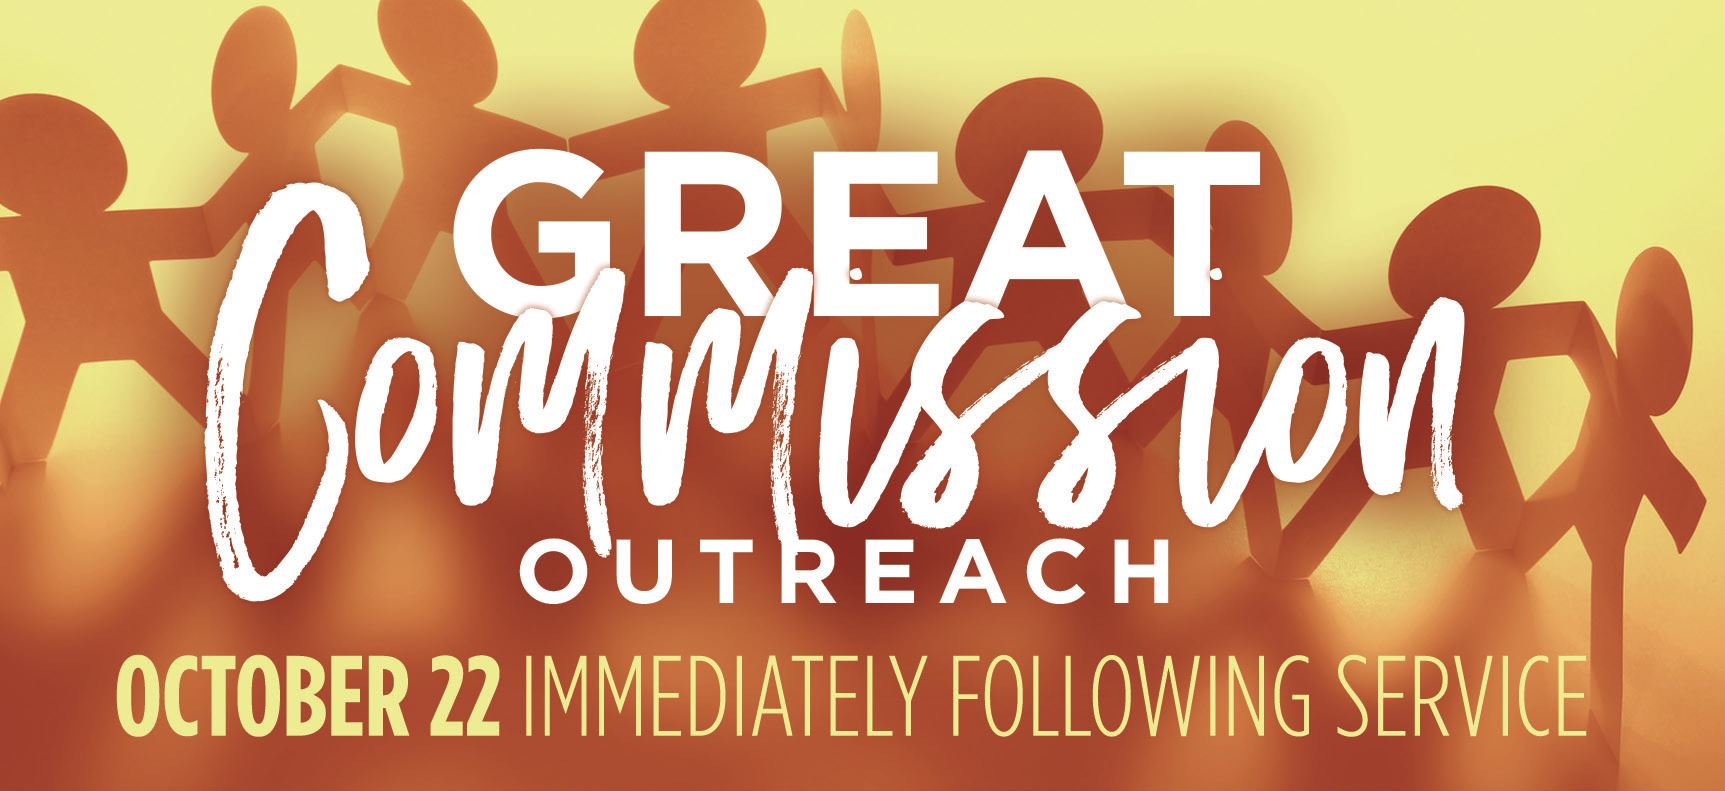 Great Commission Outreach | October 22, Immediately following service